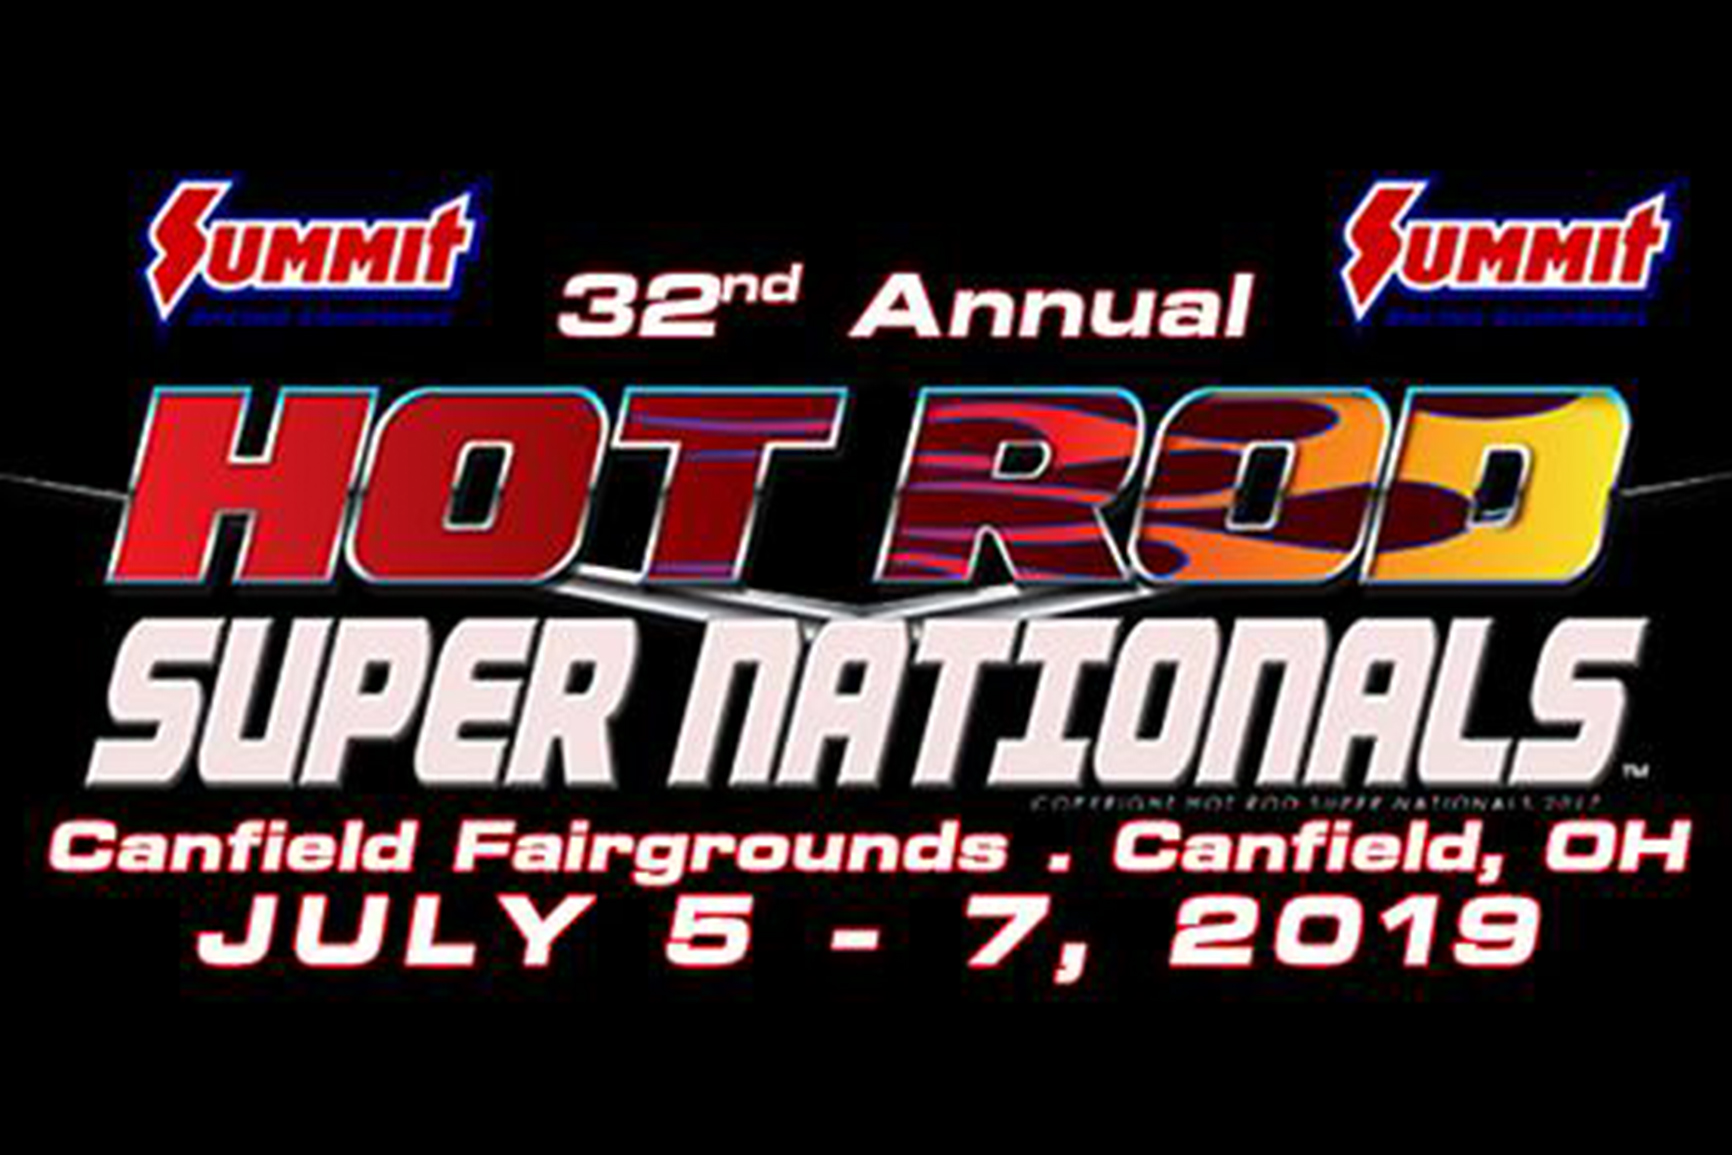 Hot Rod Super Nationals